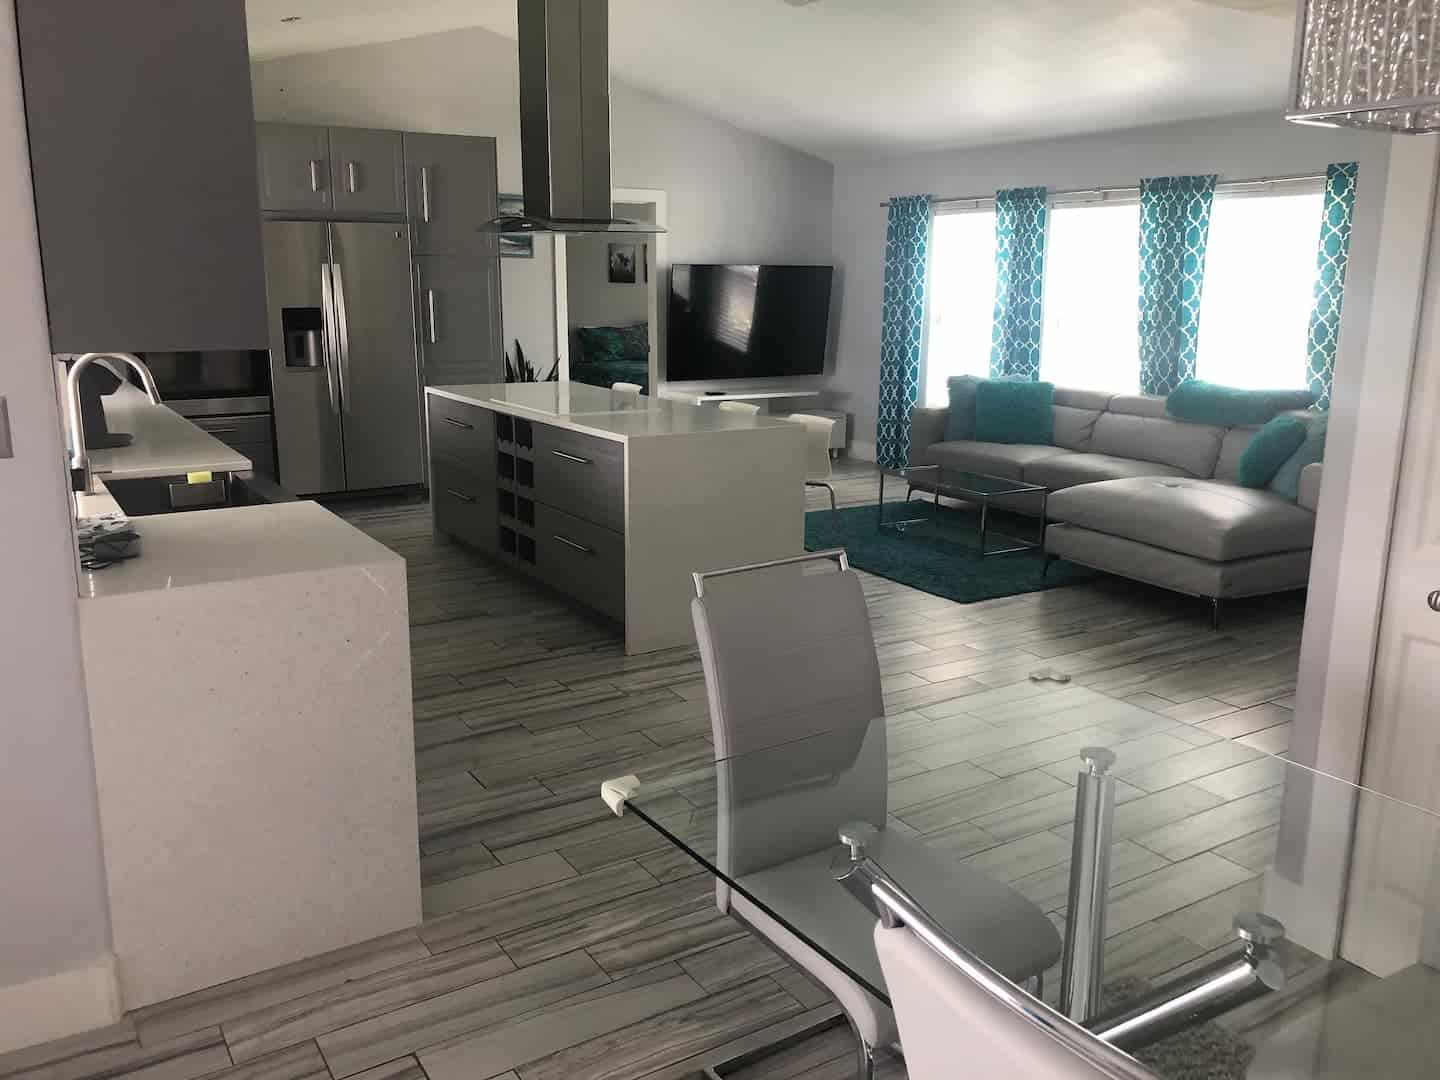 Image of Airbnb rental in Kissimmee, Florida